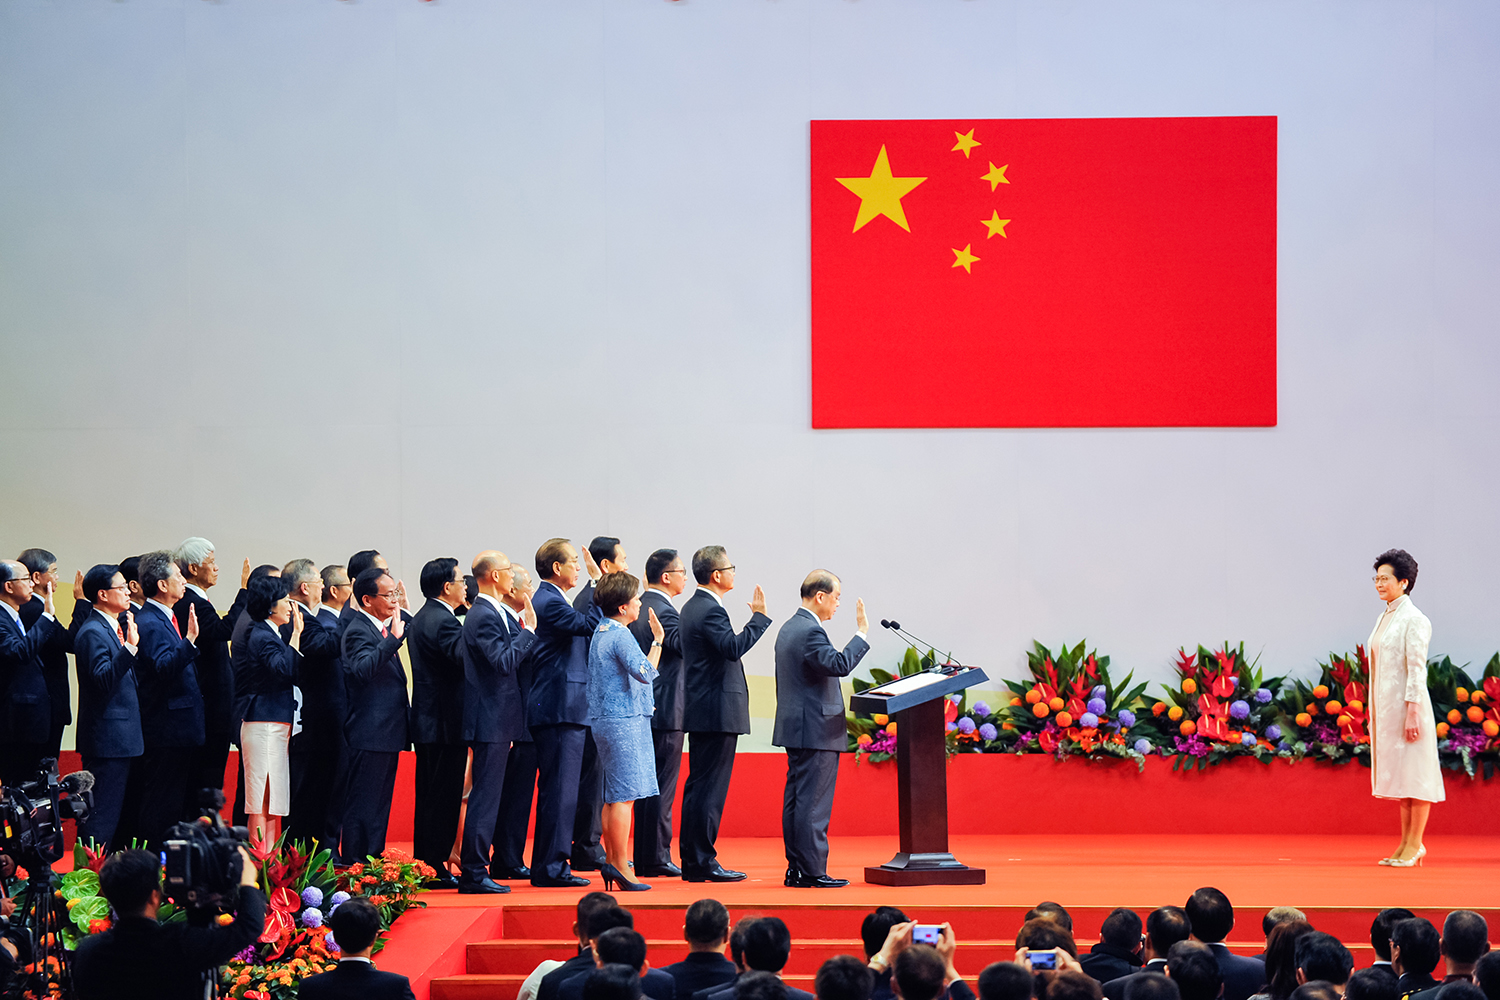 July 1, Carrie Lam Cheng Yuet-ngor (right), Hong Kong's new Chief Executive, and her new cabinet are sworn in by Chinese President Xi Jinping during an inauguration ceremony in Hong Kong. (Keith Tsuji/Getty Images)